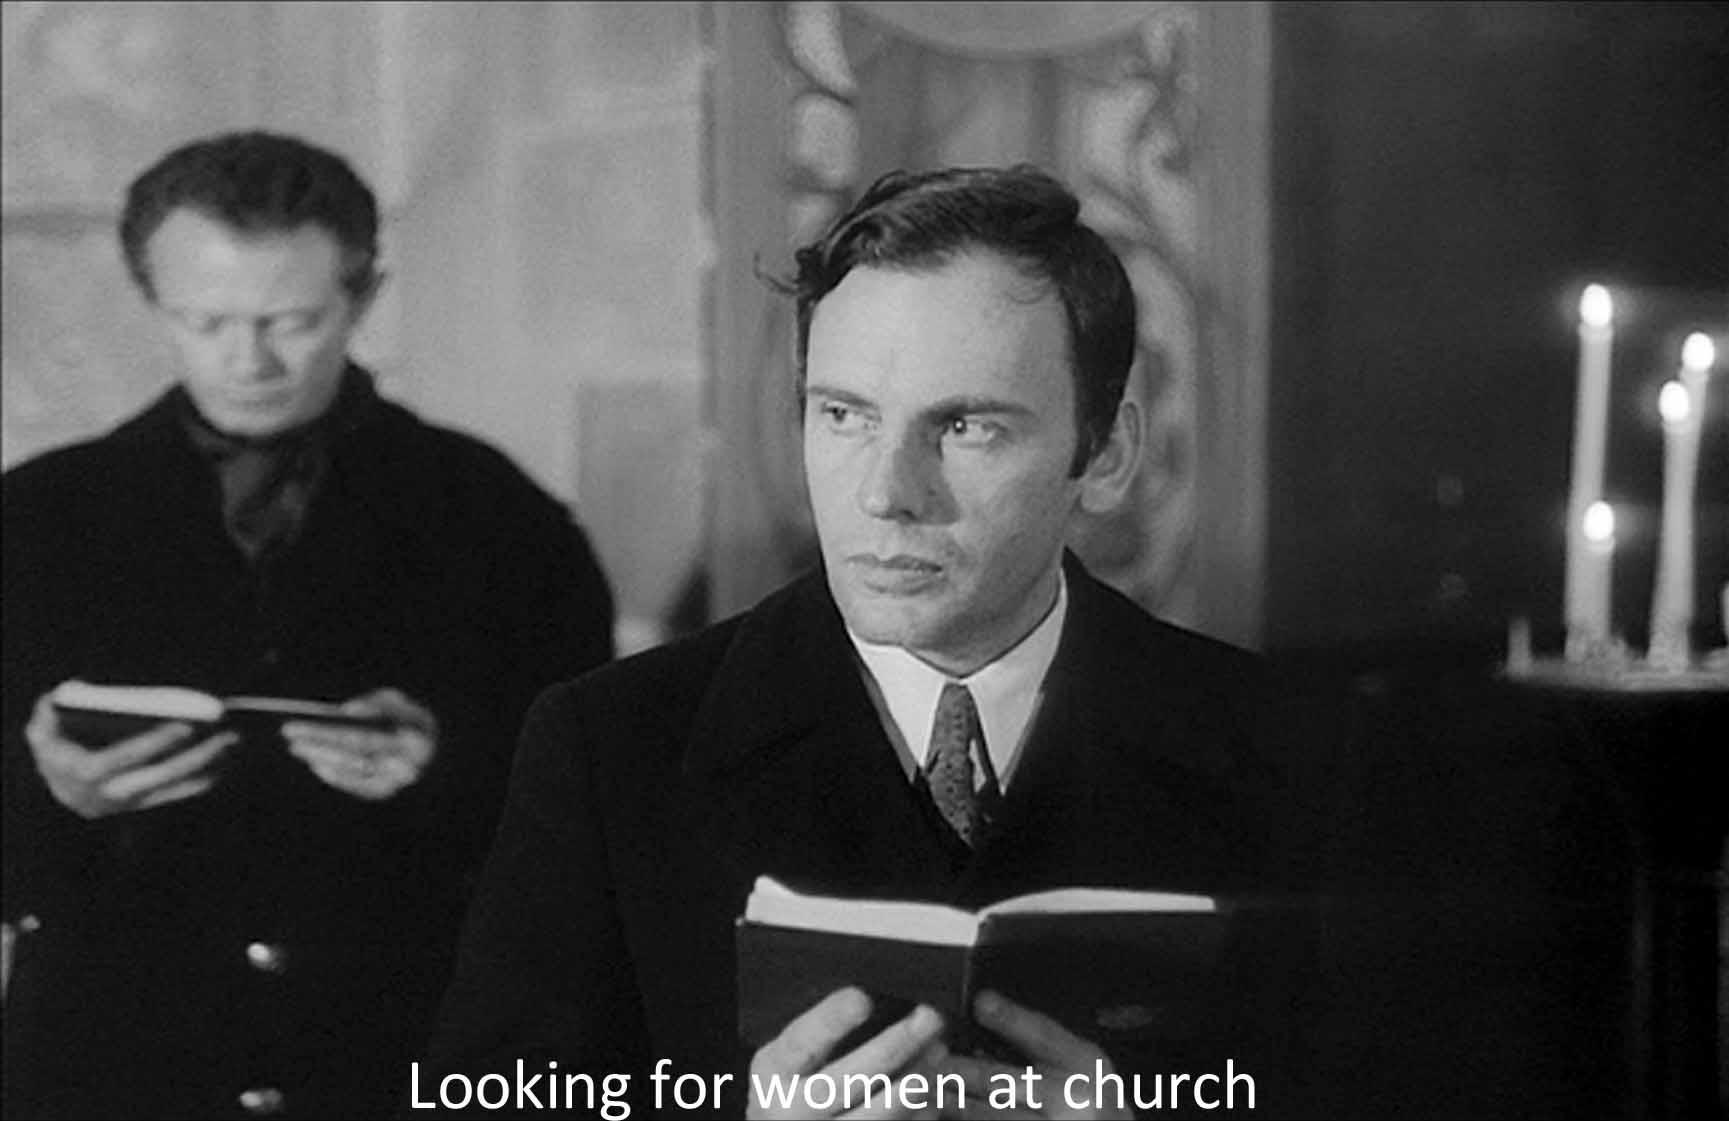 Looking for women at church